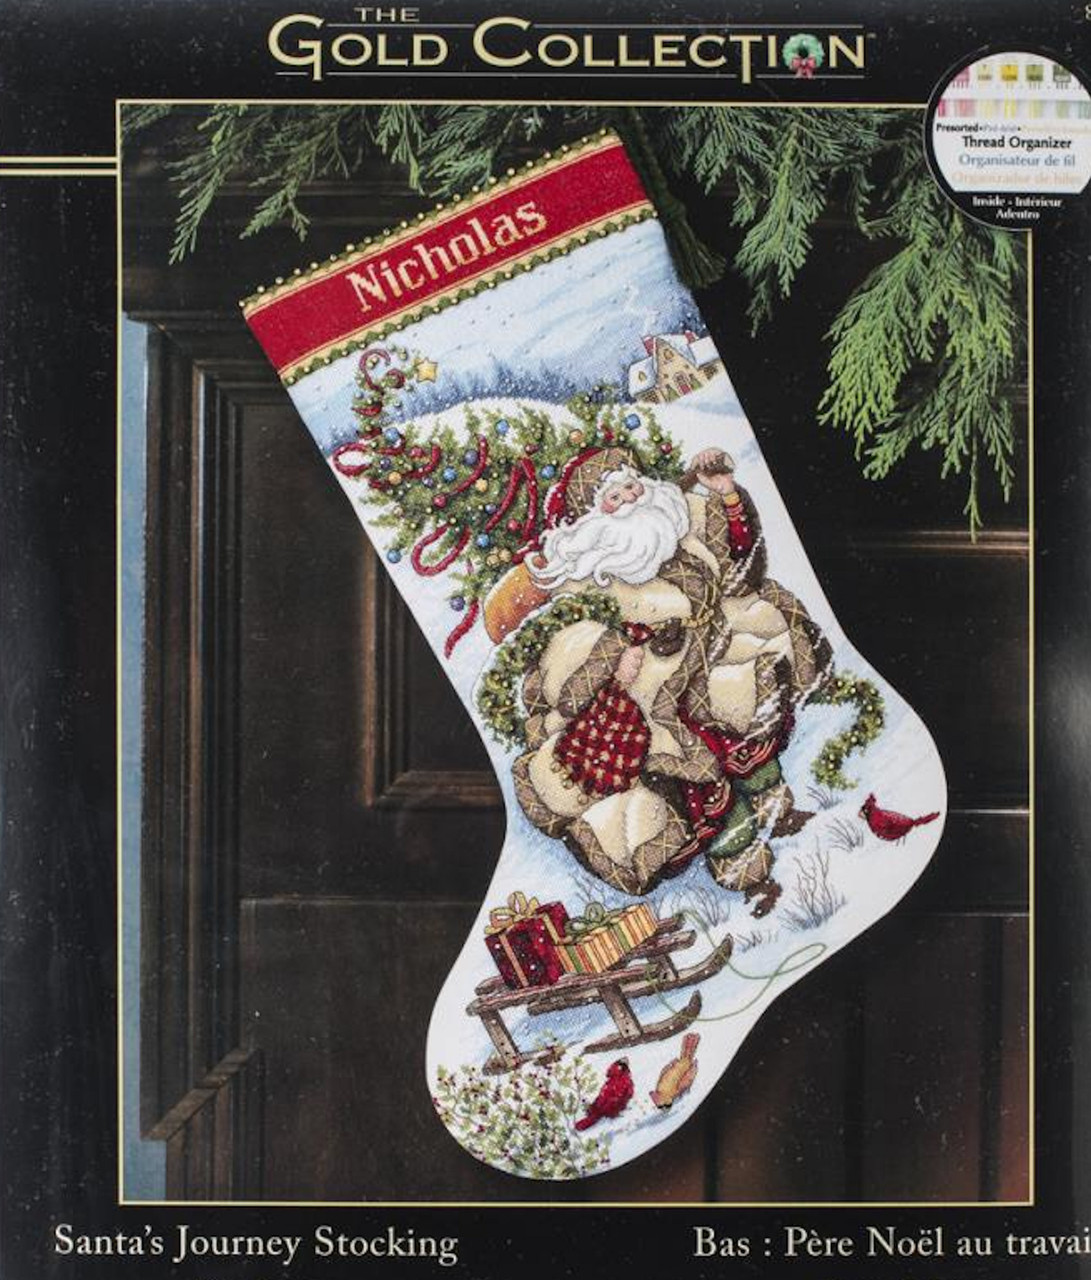 Gold Collection - Santa's Journey Stocking